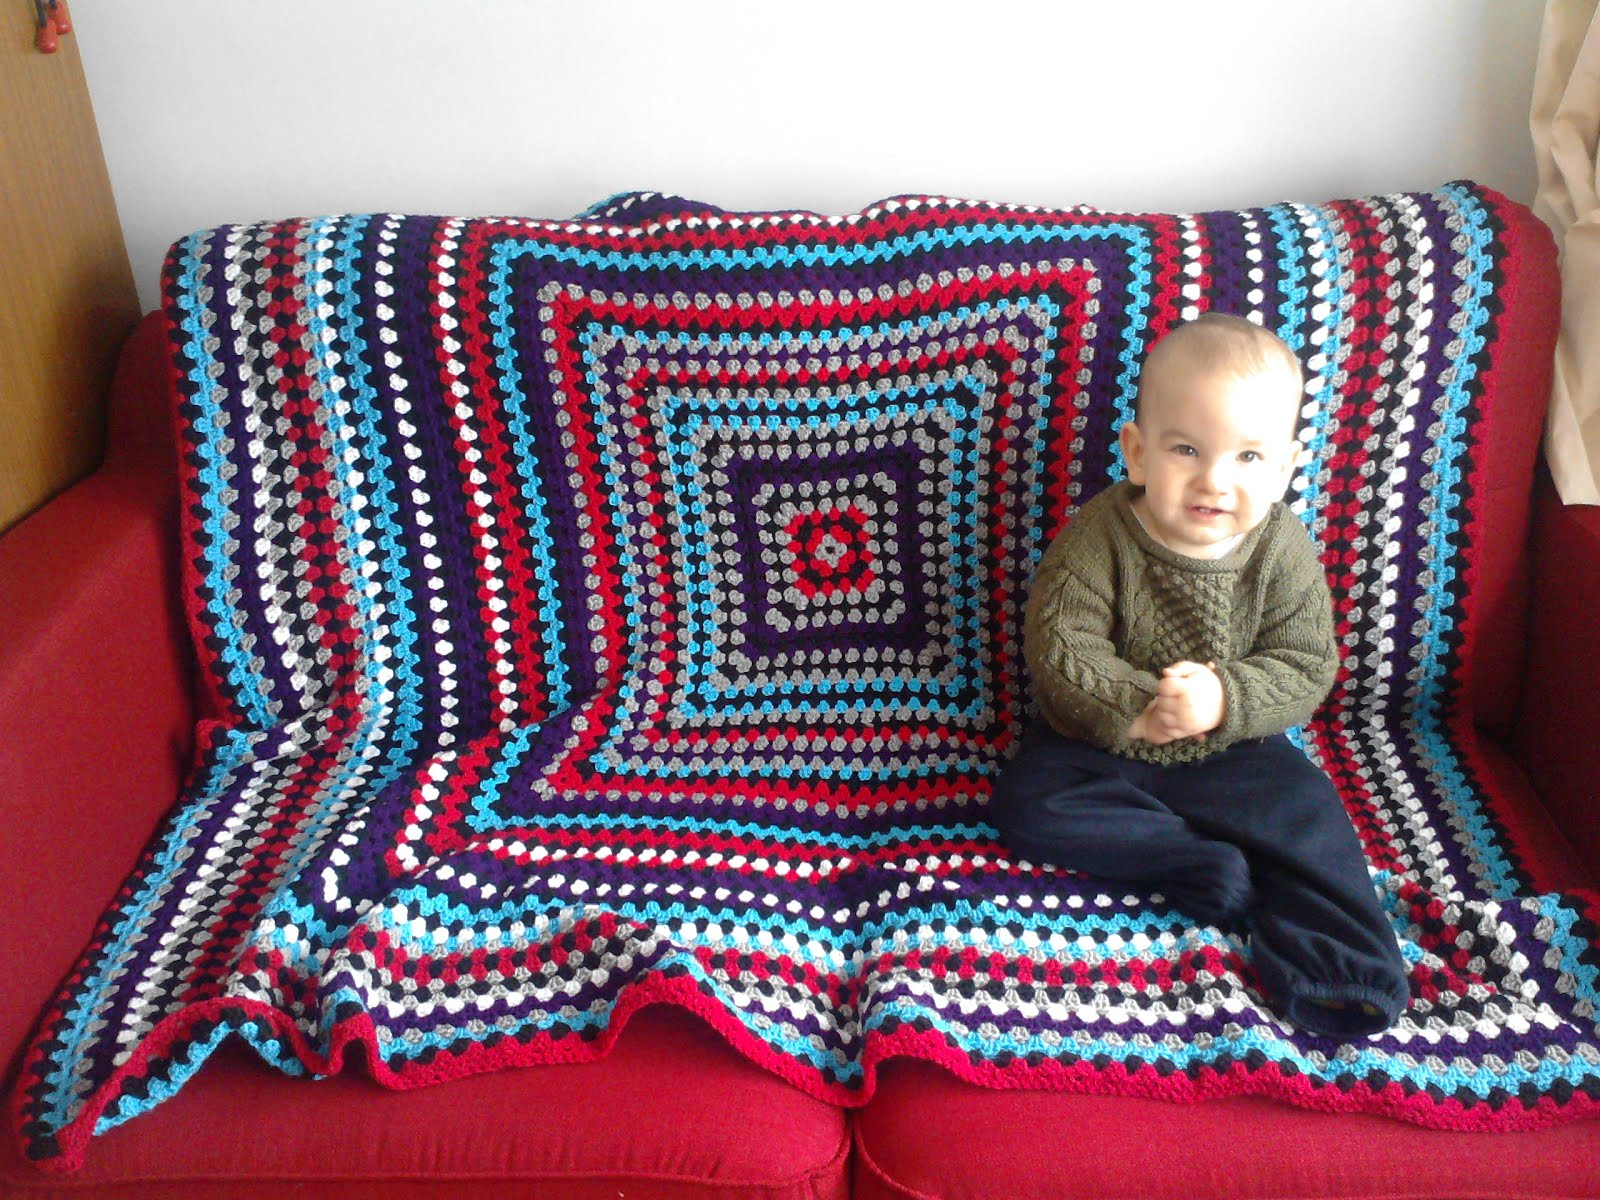 The Best Job In The World: Crochet blanket in granny style